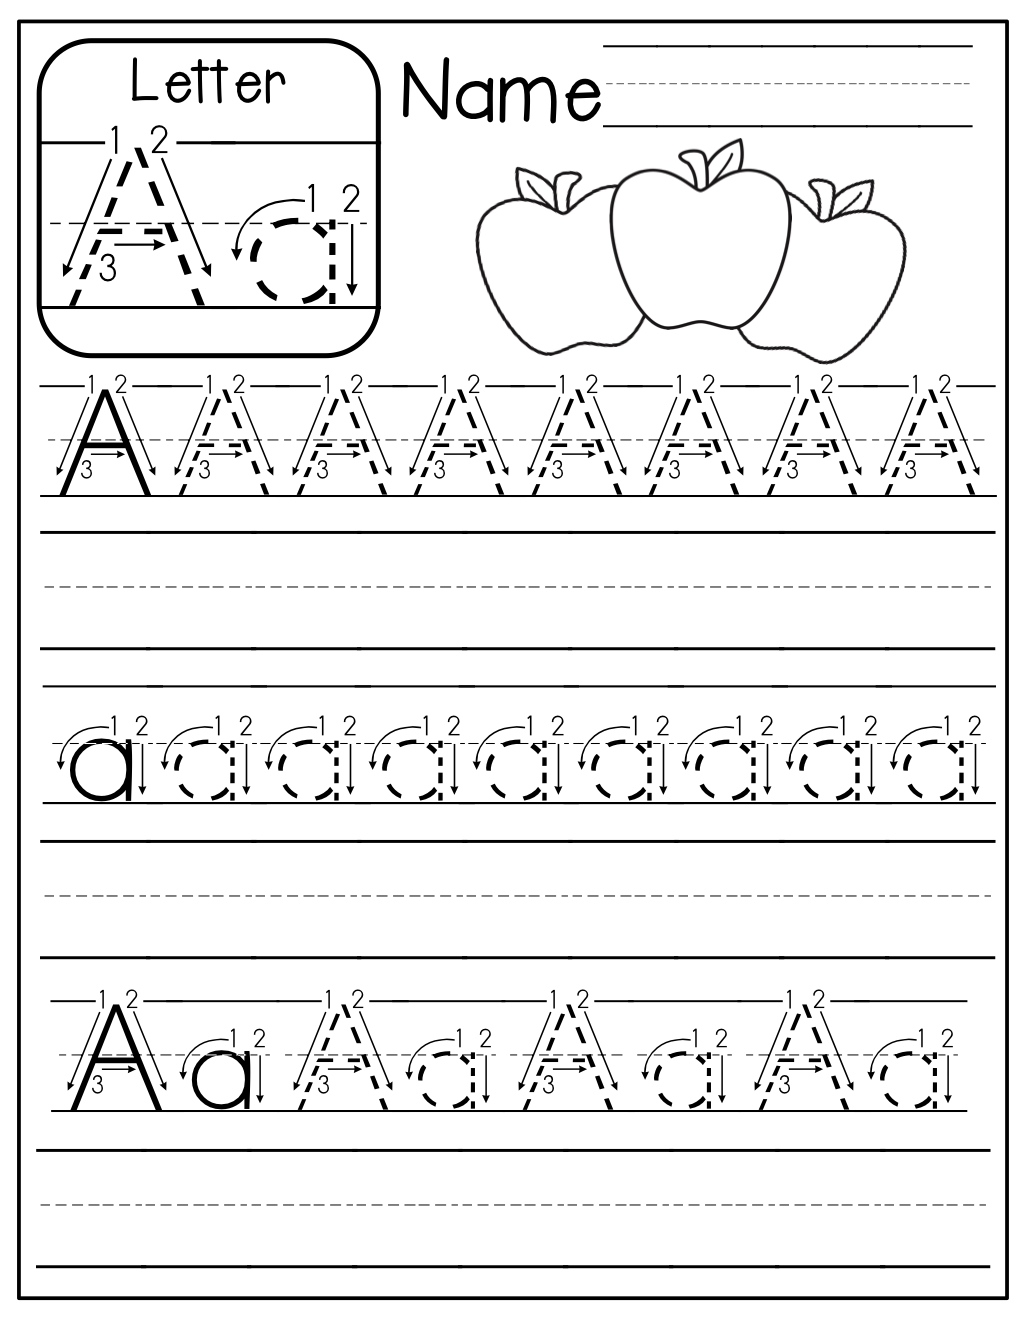 Free…free!! A-Z Handwriting Pages! Just Print Them Out intended for Alphabet Handwriting Worksheets A To Z For Preschool To First Grade